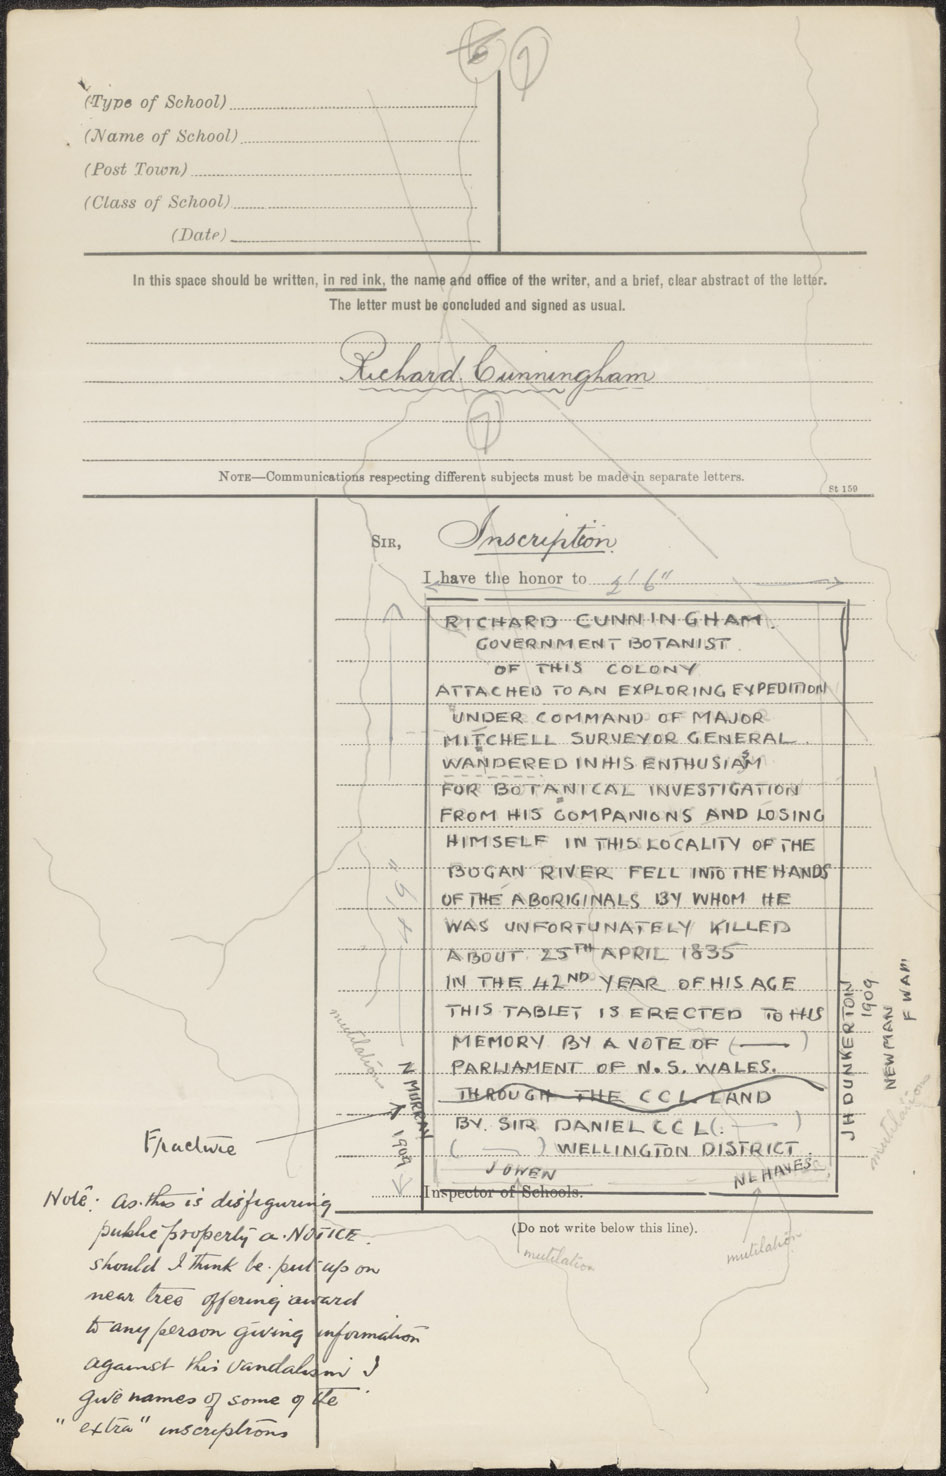 Fig. 6b: Diagram drawn by George Green detailing inscription on Cunningham's grave, 1920. NRS 20161, [17/8620], [19], George Green to Director of Botanic Gardens, 20/06/1920